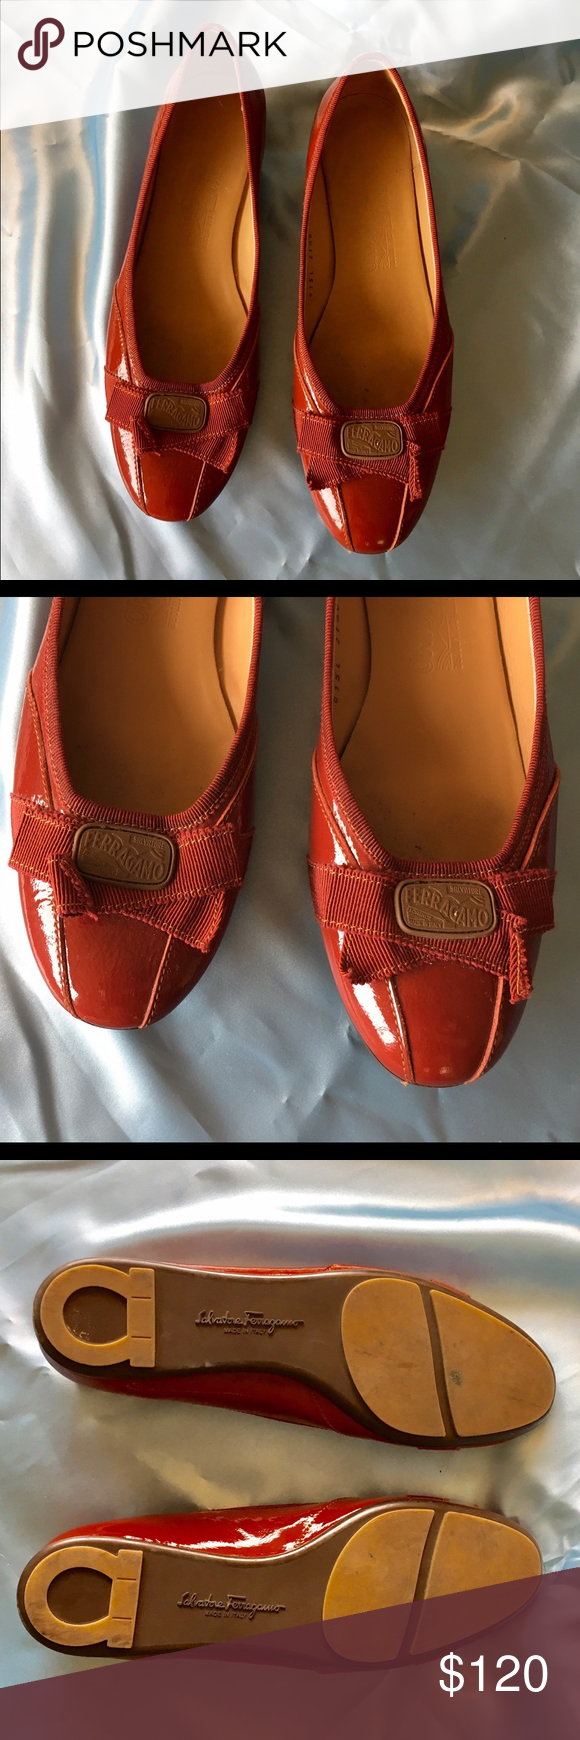 Vintage Ferragamo Burnt Orange Patent Flats 8C GORGEOUS!! Size is 8 C - wide width!! Vintage Salvatore Ferragamo patent leather flats. Color is burnt orange & looks reddish, rust color. Worn only once!!!! Excellent newish condition!! WOW! Will come in a plastic shoebox gift wrapped & a free surprise!🎁🎁🎁 Happy to add additional pics for serious buyers. 😘😘😘 Salvatore Ferragamo Shoes Flats & Loafers